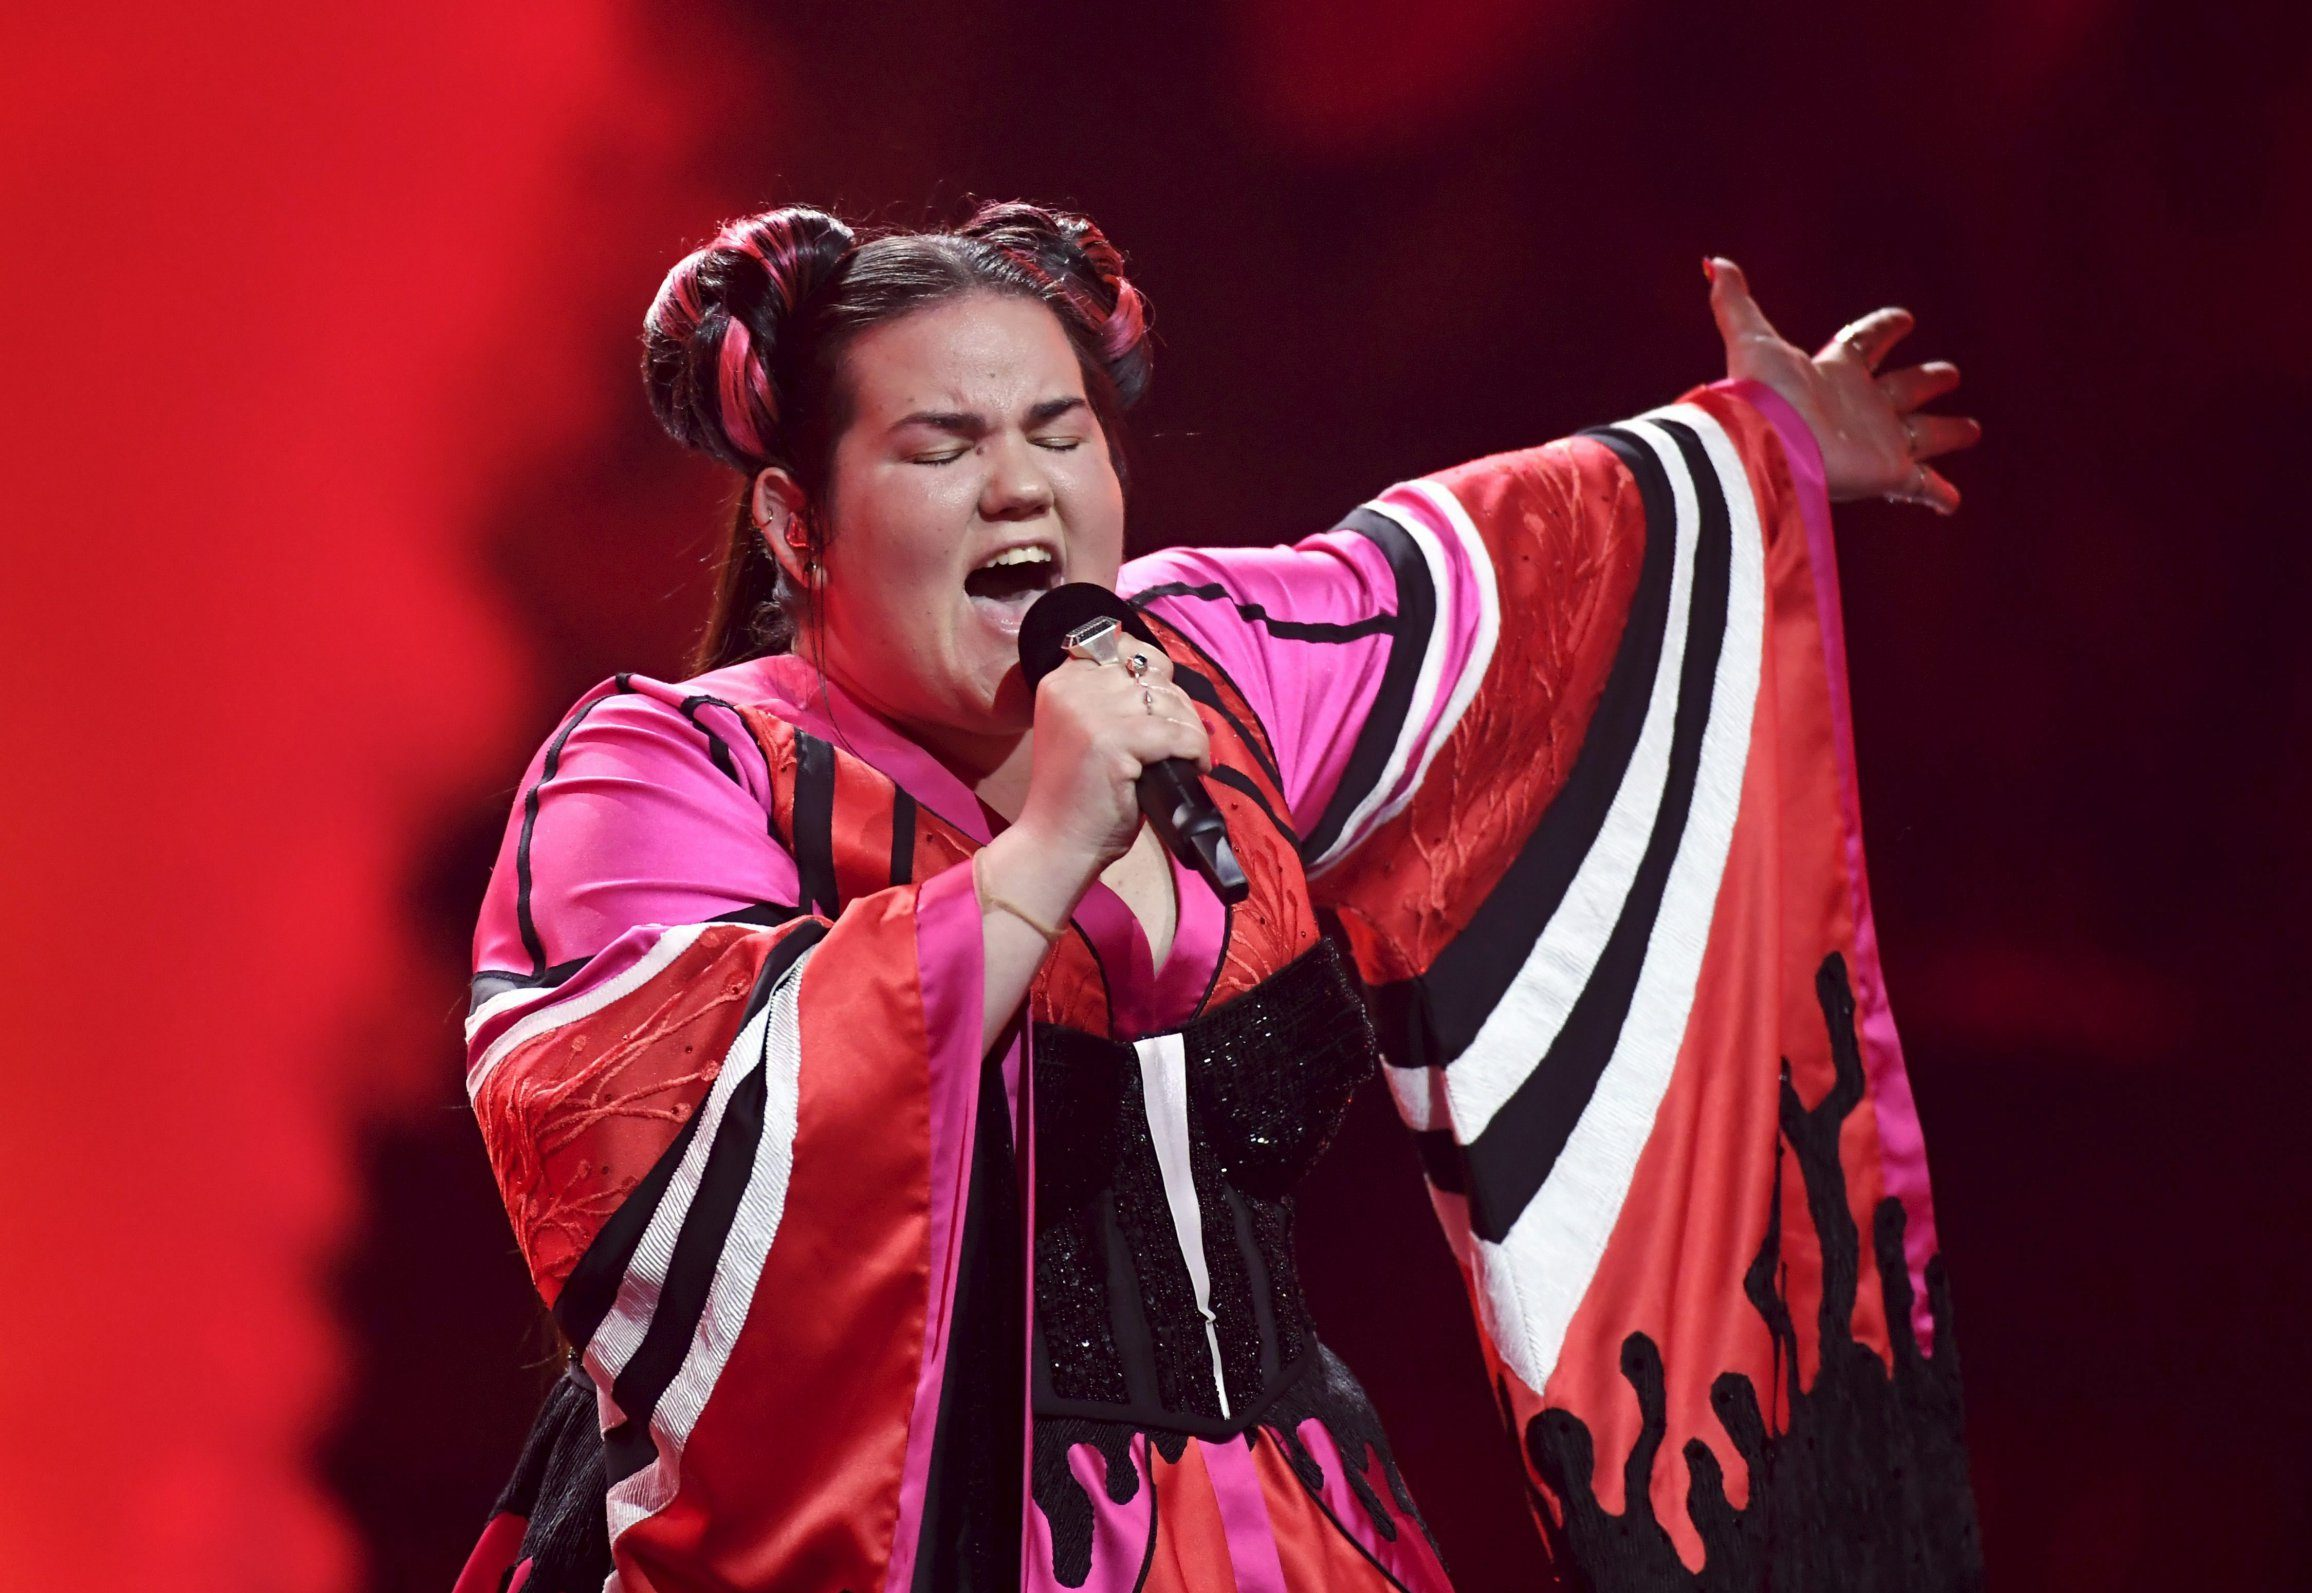 Mandatory Credit: Photo by Markku Ulander/REX/Shutterstock (9669170m) Netta of Israel Eurovision Song Contest Grand Final dress rehearsal, Lisbon, Portugal - 11 May 2018